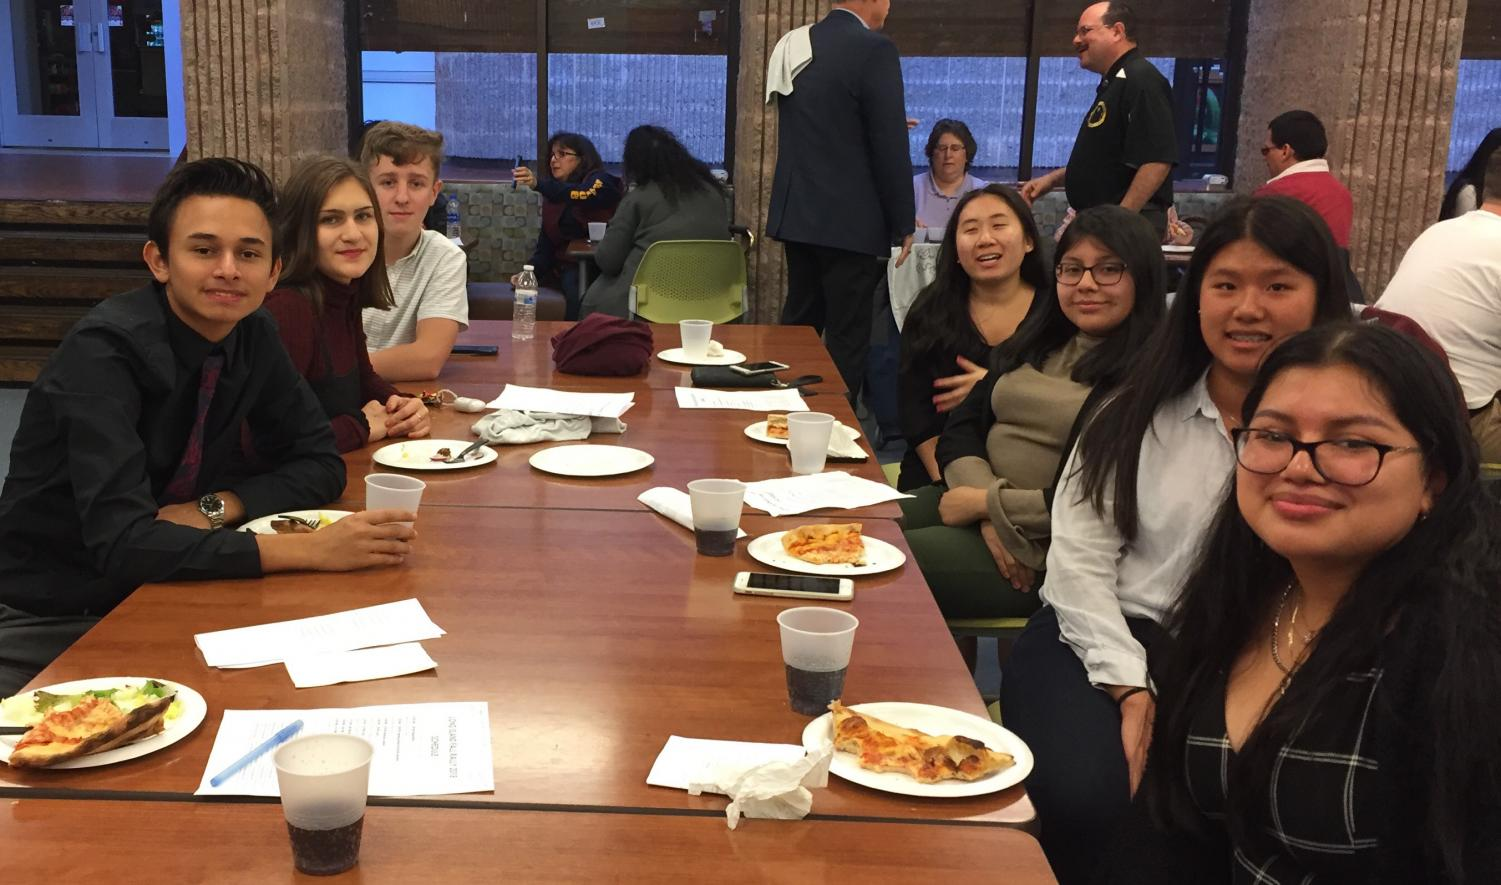 PMHS Key Club took a lunch break during their visit to LIU Post.